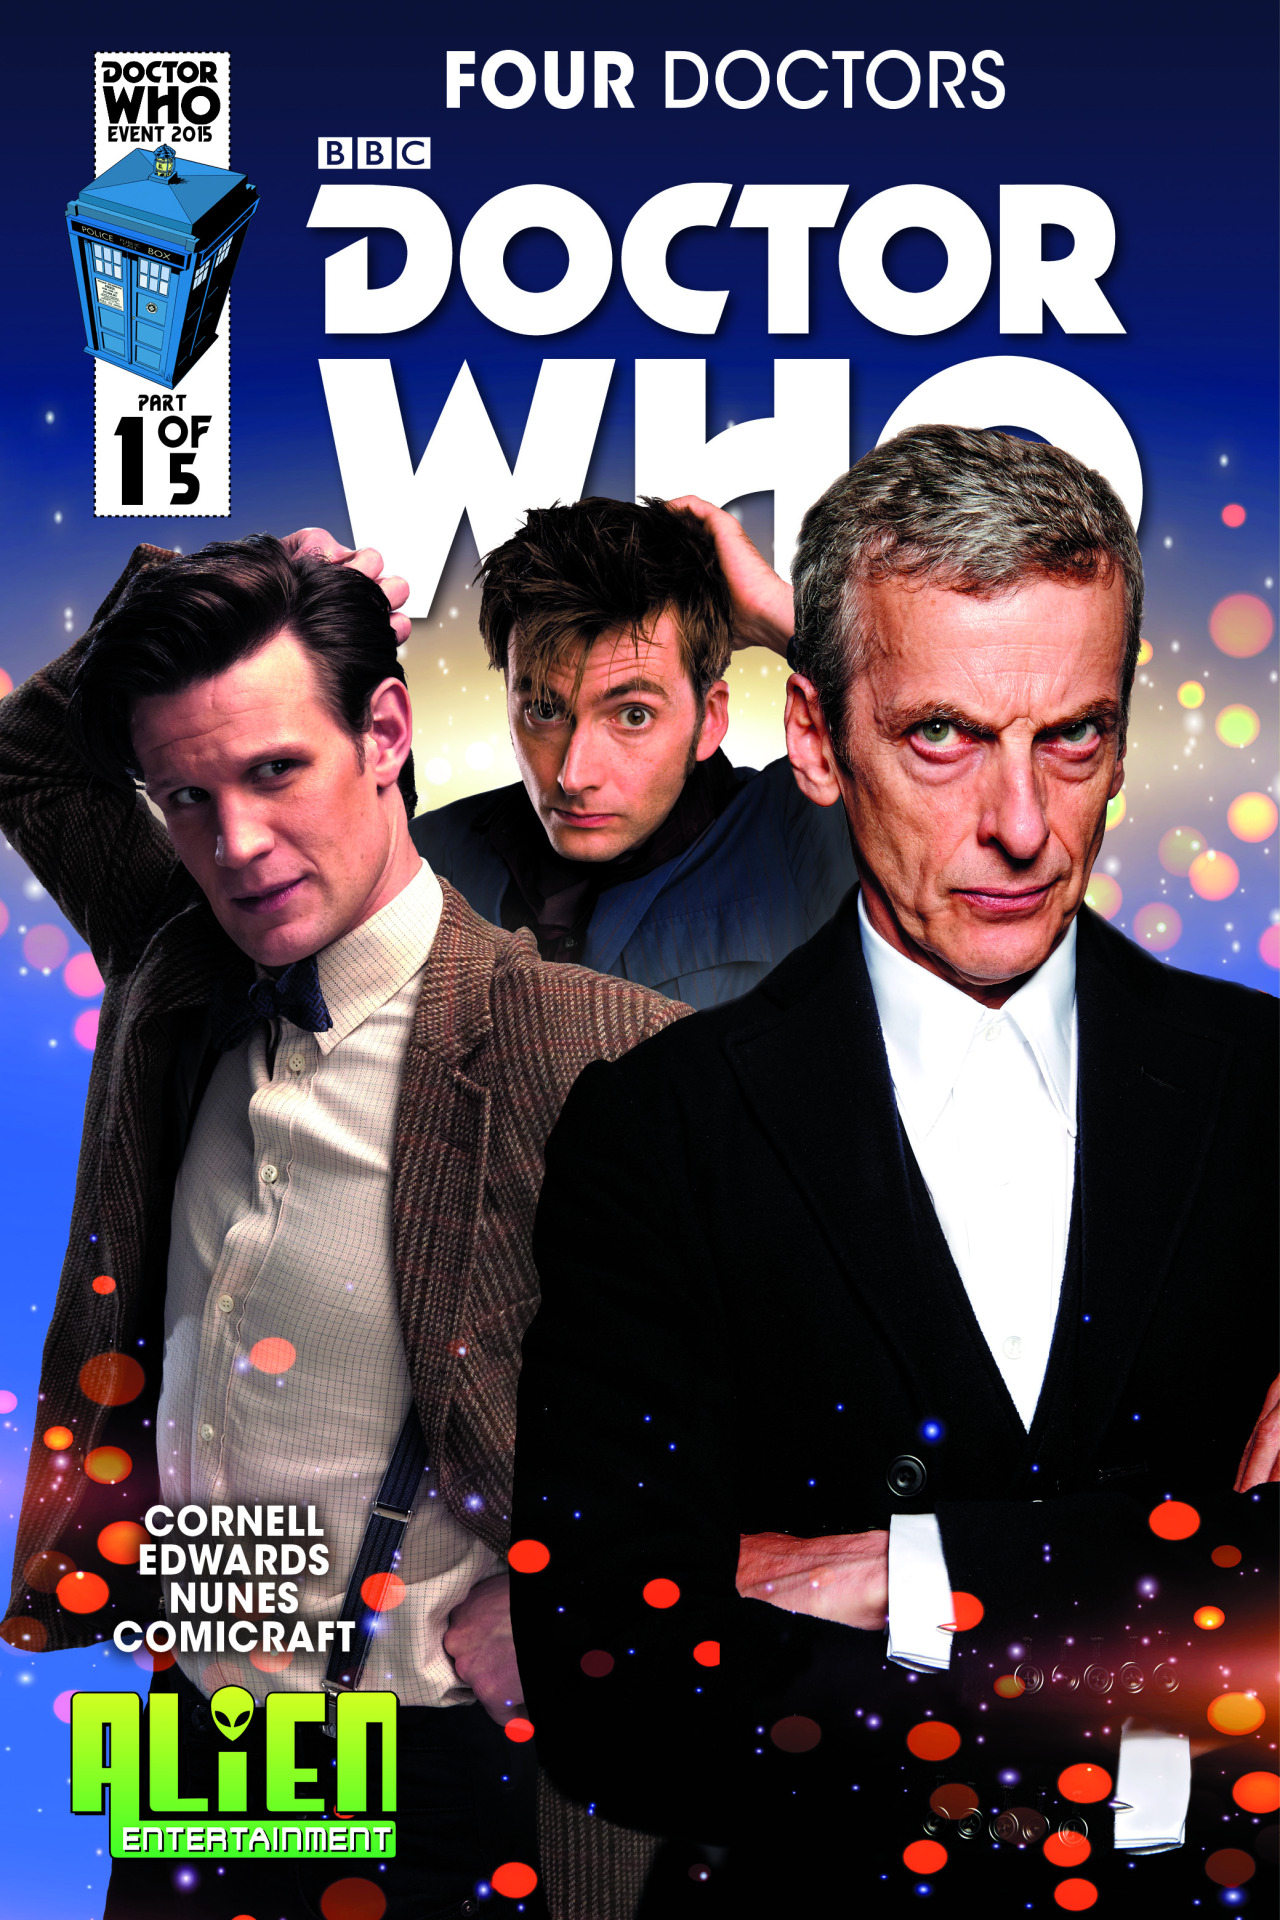 Doctor Who: Four Doctors #1 Alien Entertainment Photo Variant Cover (Credit: titan)